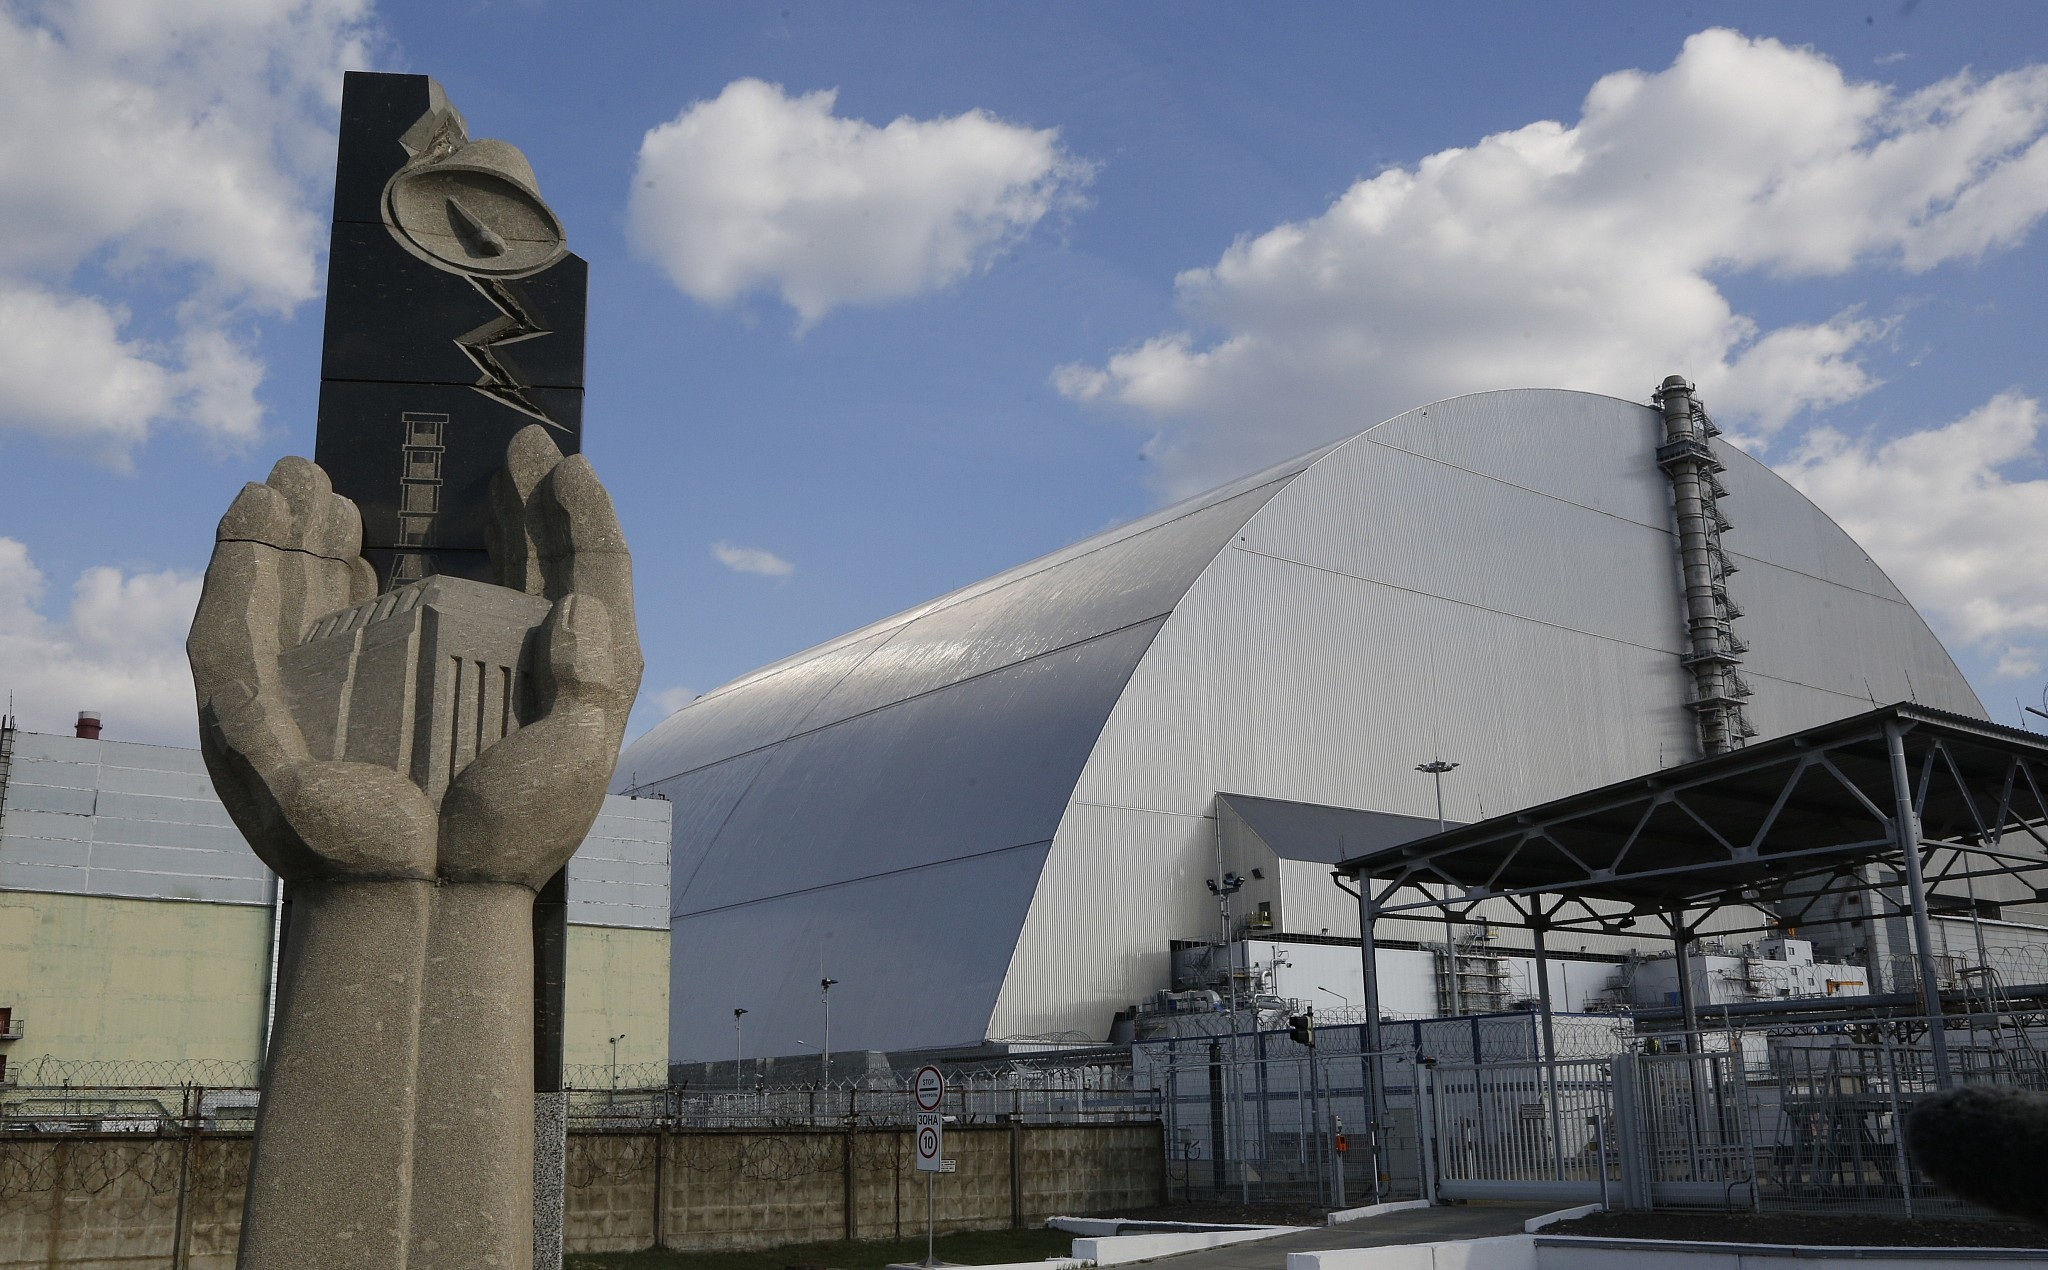 Israel's Dimona nuclear reactor isn't Chernobyl, but does